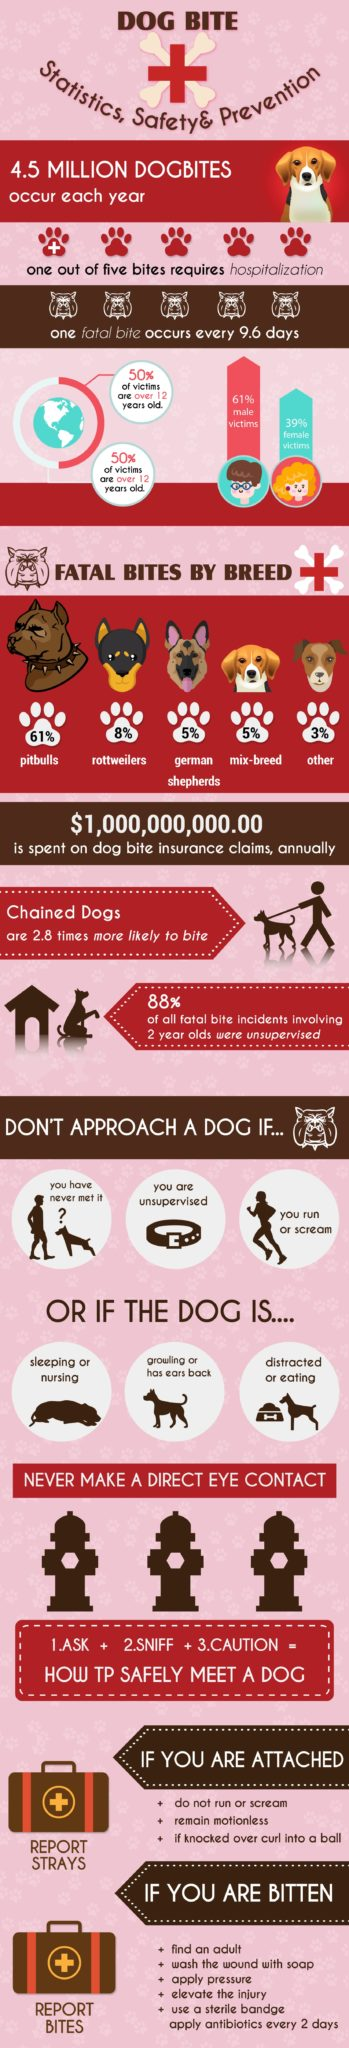 Dog-bites-statistics, safety and prevention